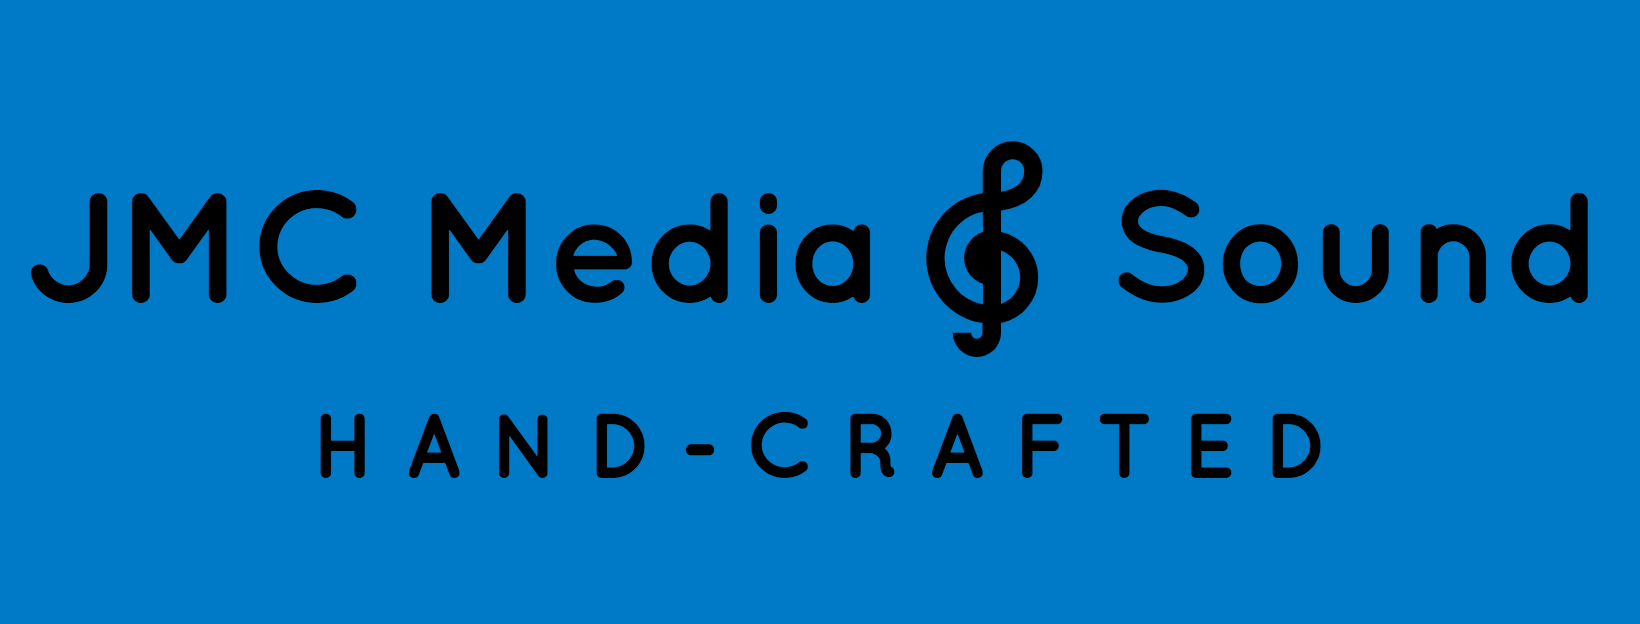 JMC Media and Sound company logo